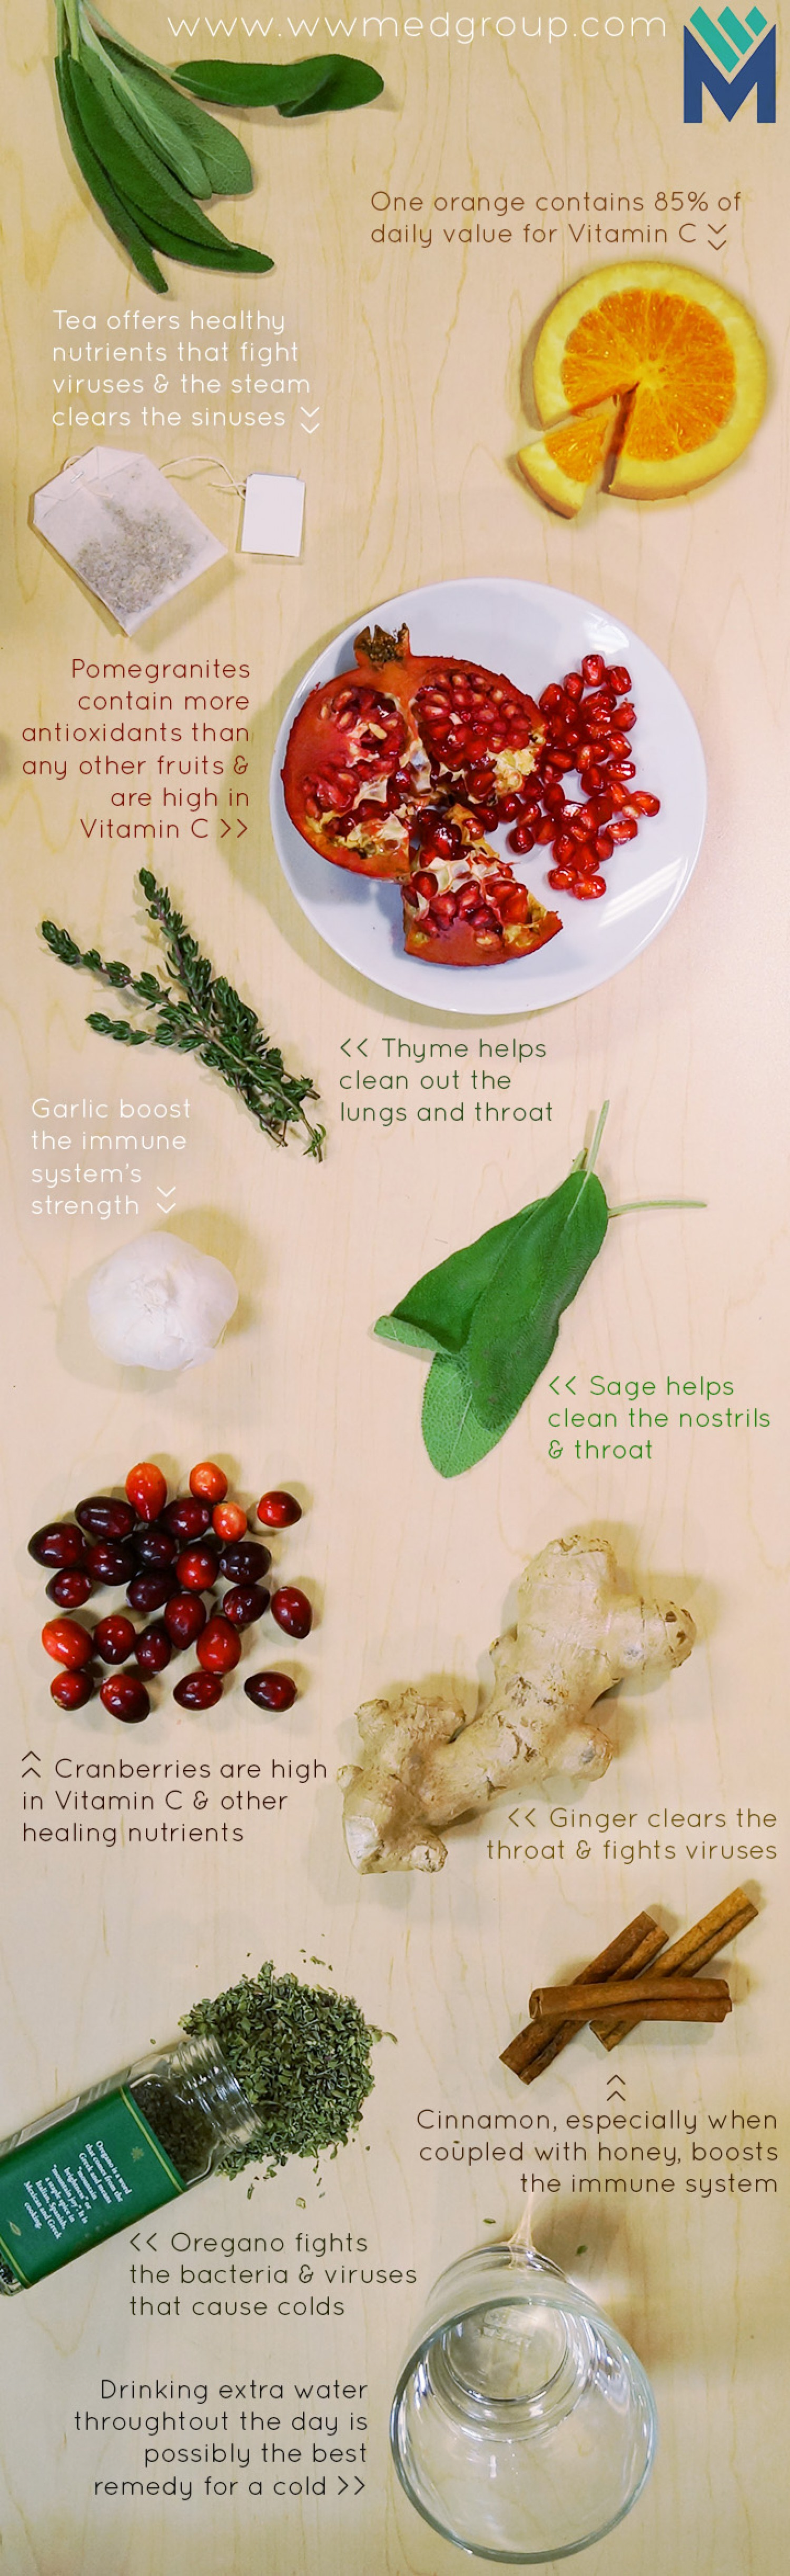 Foods that treat colds infographic